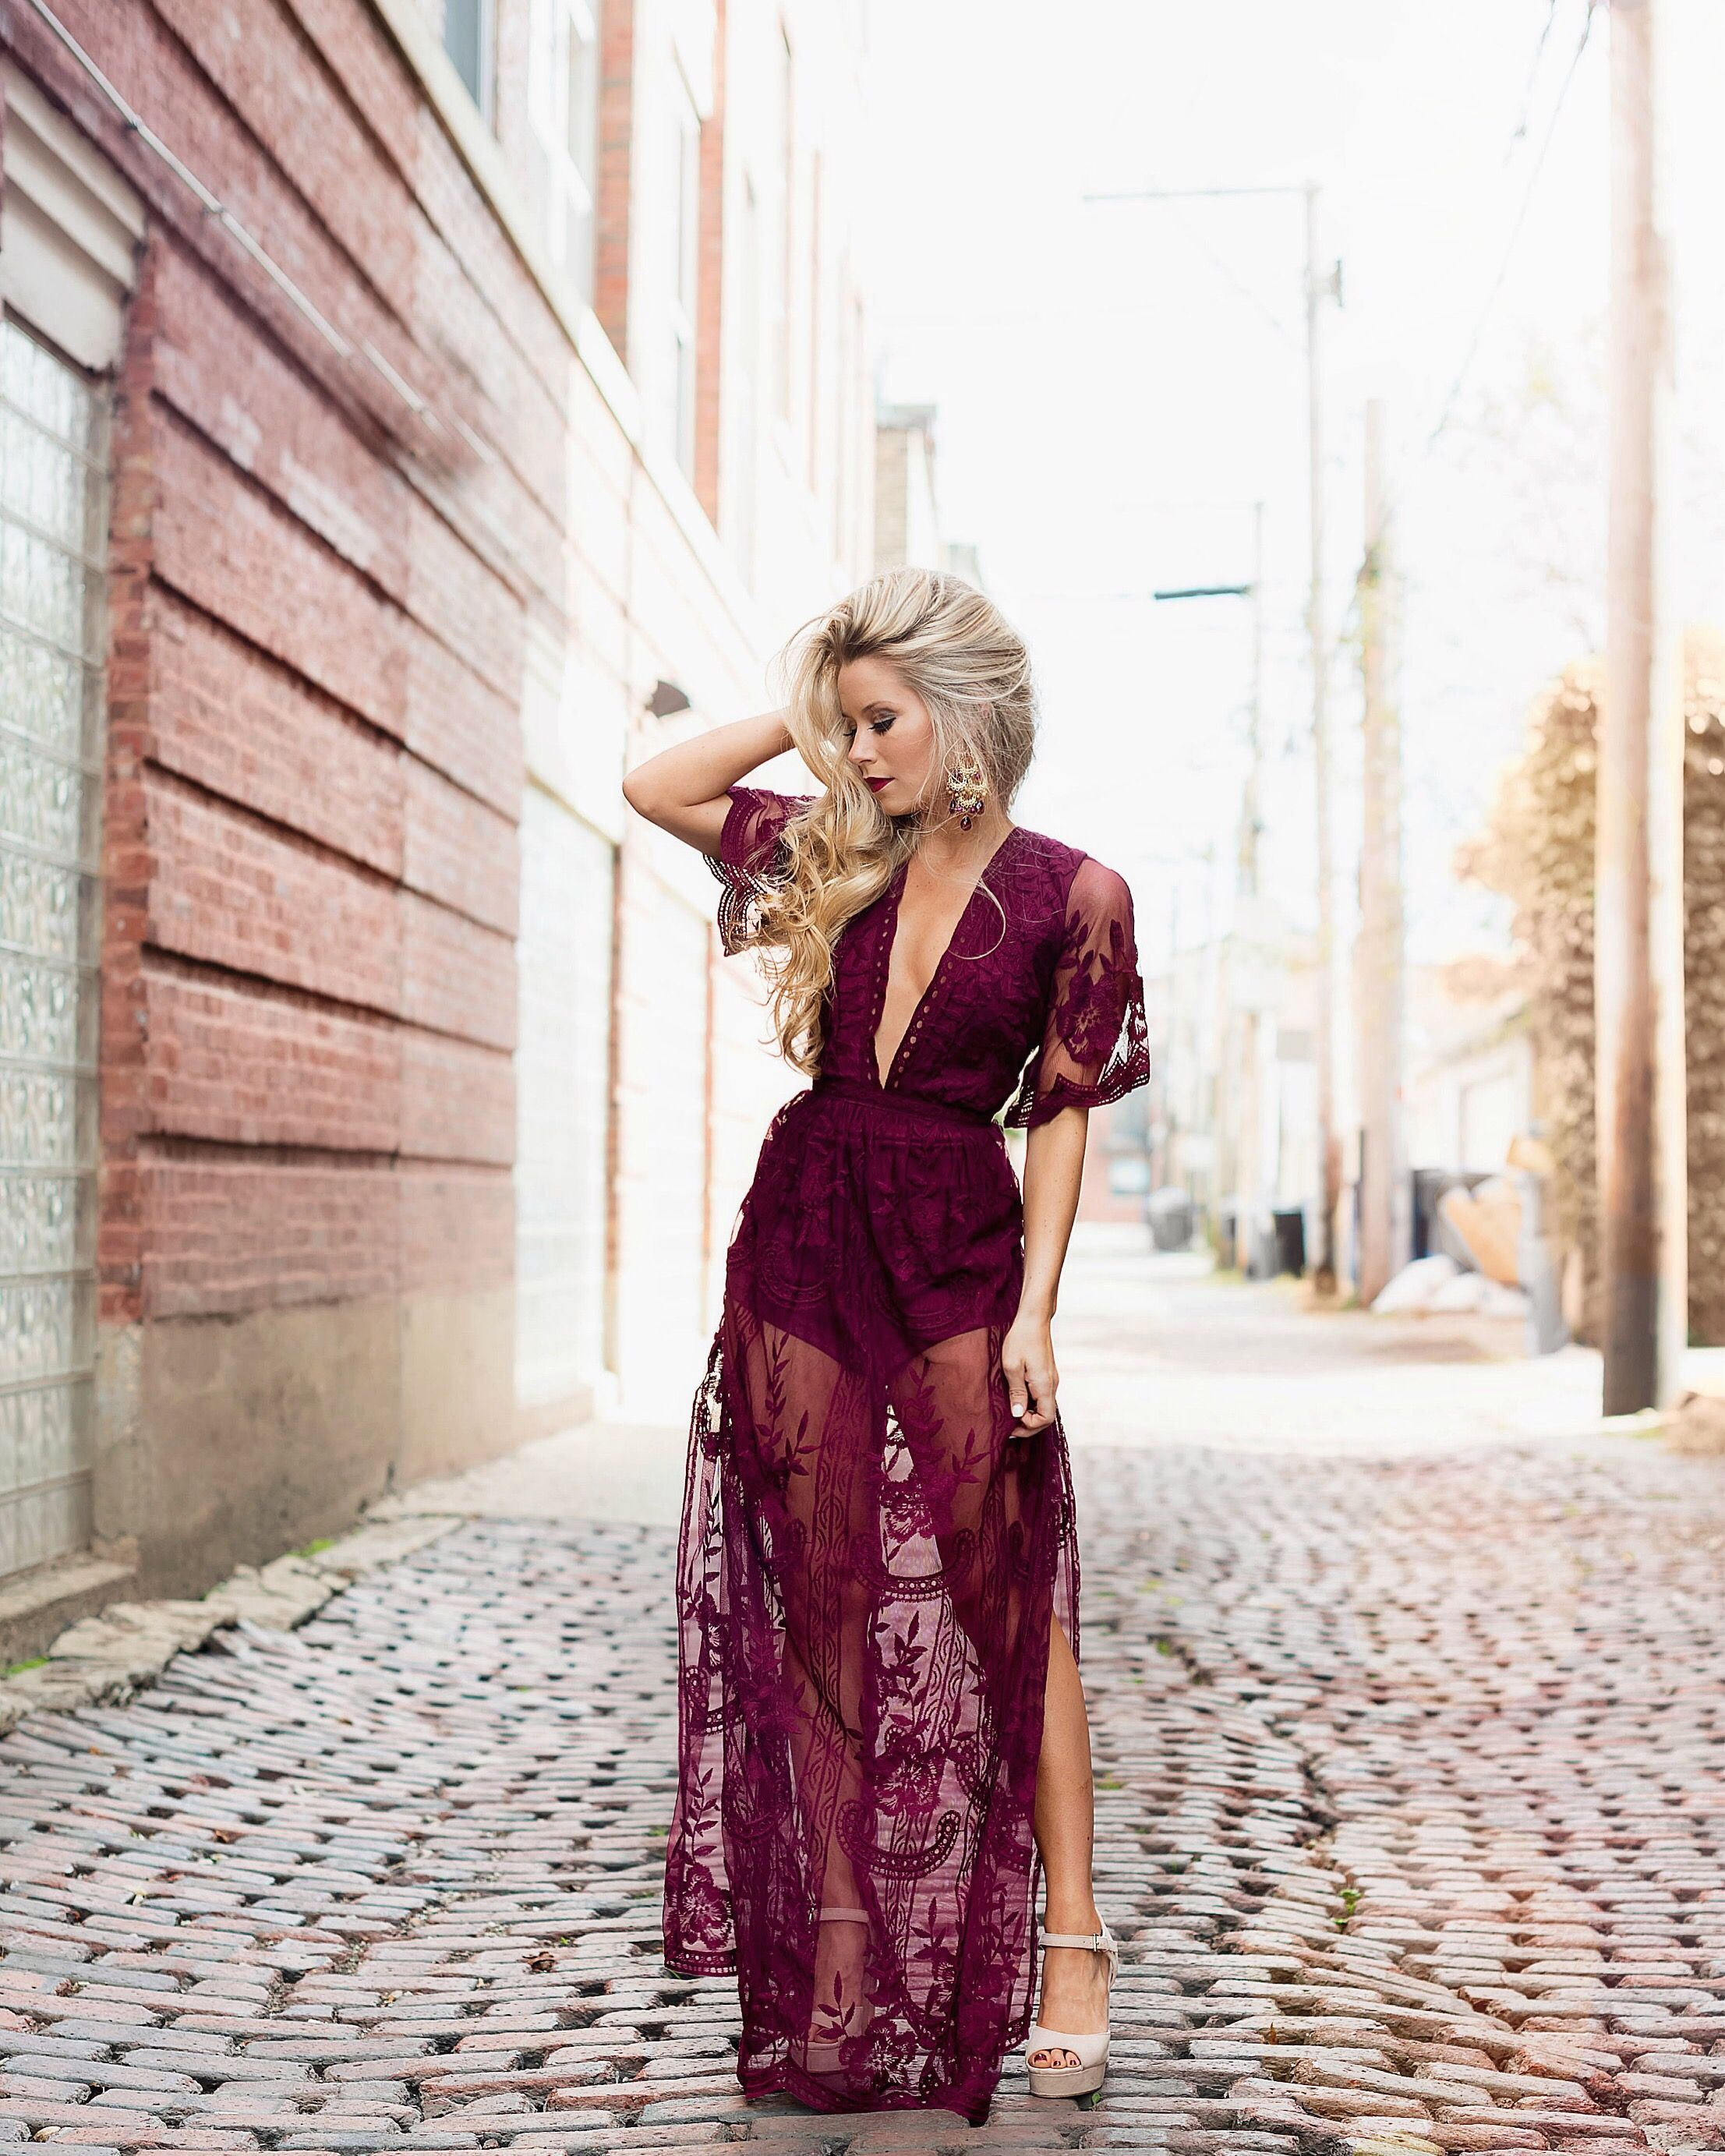 959f203198d2 Merlot Lace Fall Maxi - OliviaRink.com    OBSESSED WITH THIS BEAUT